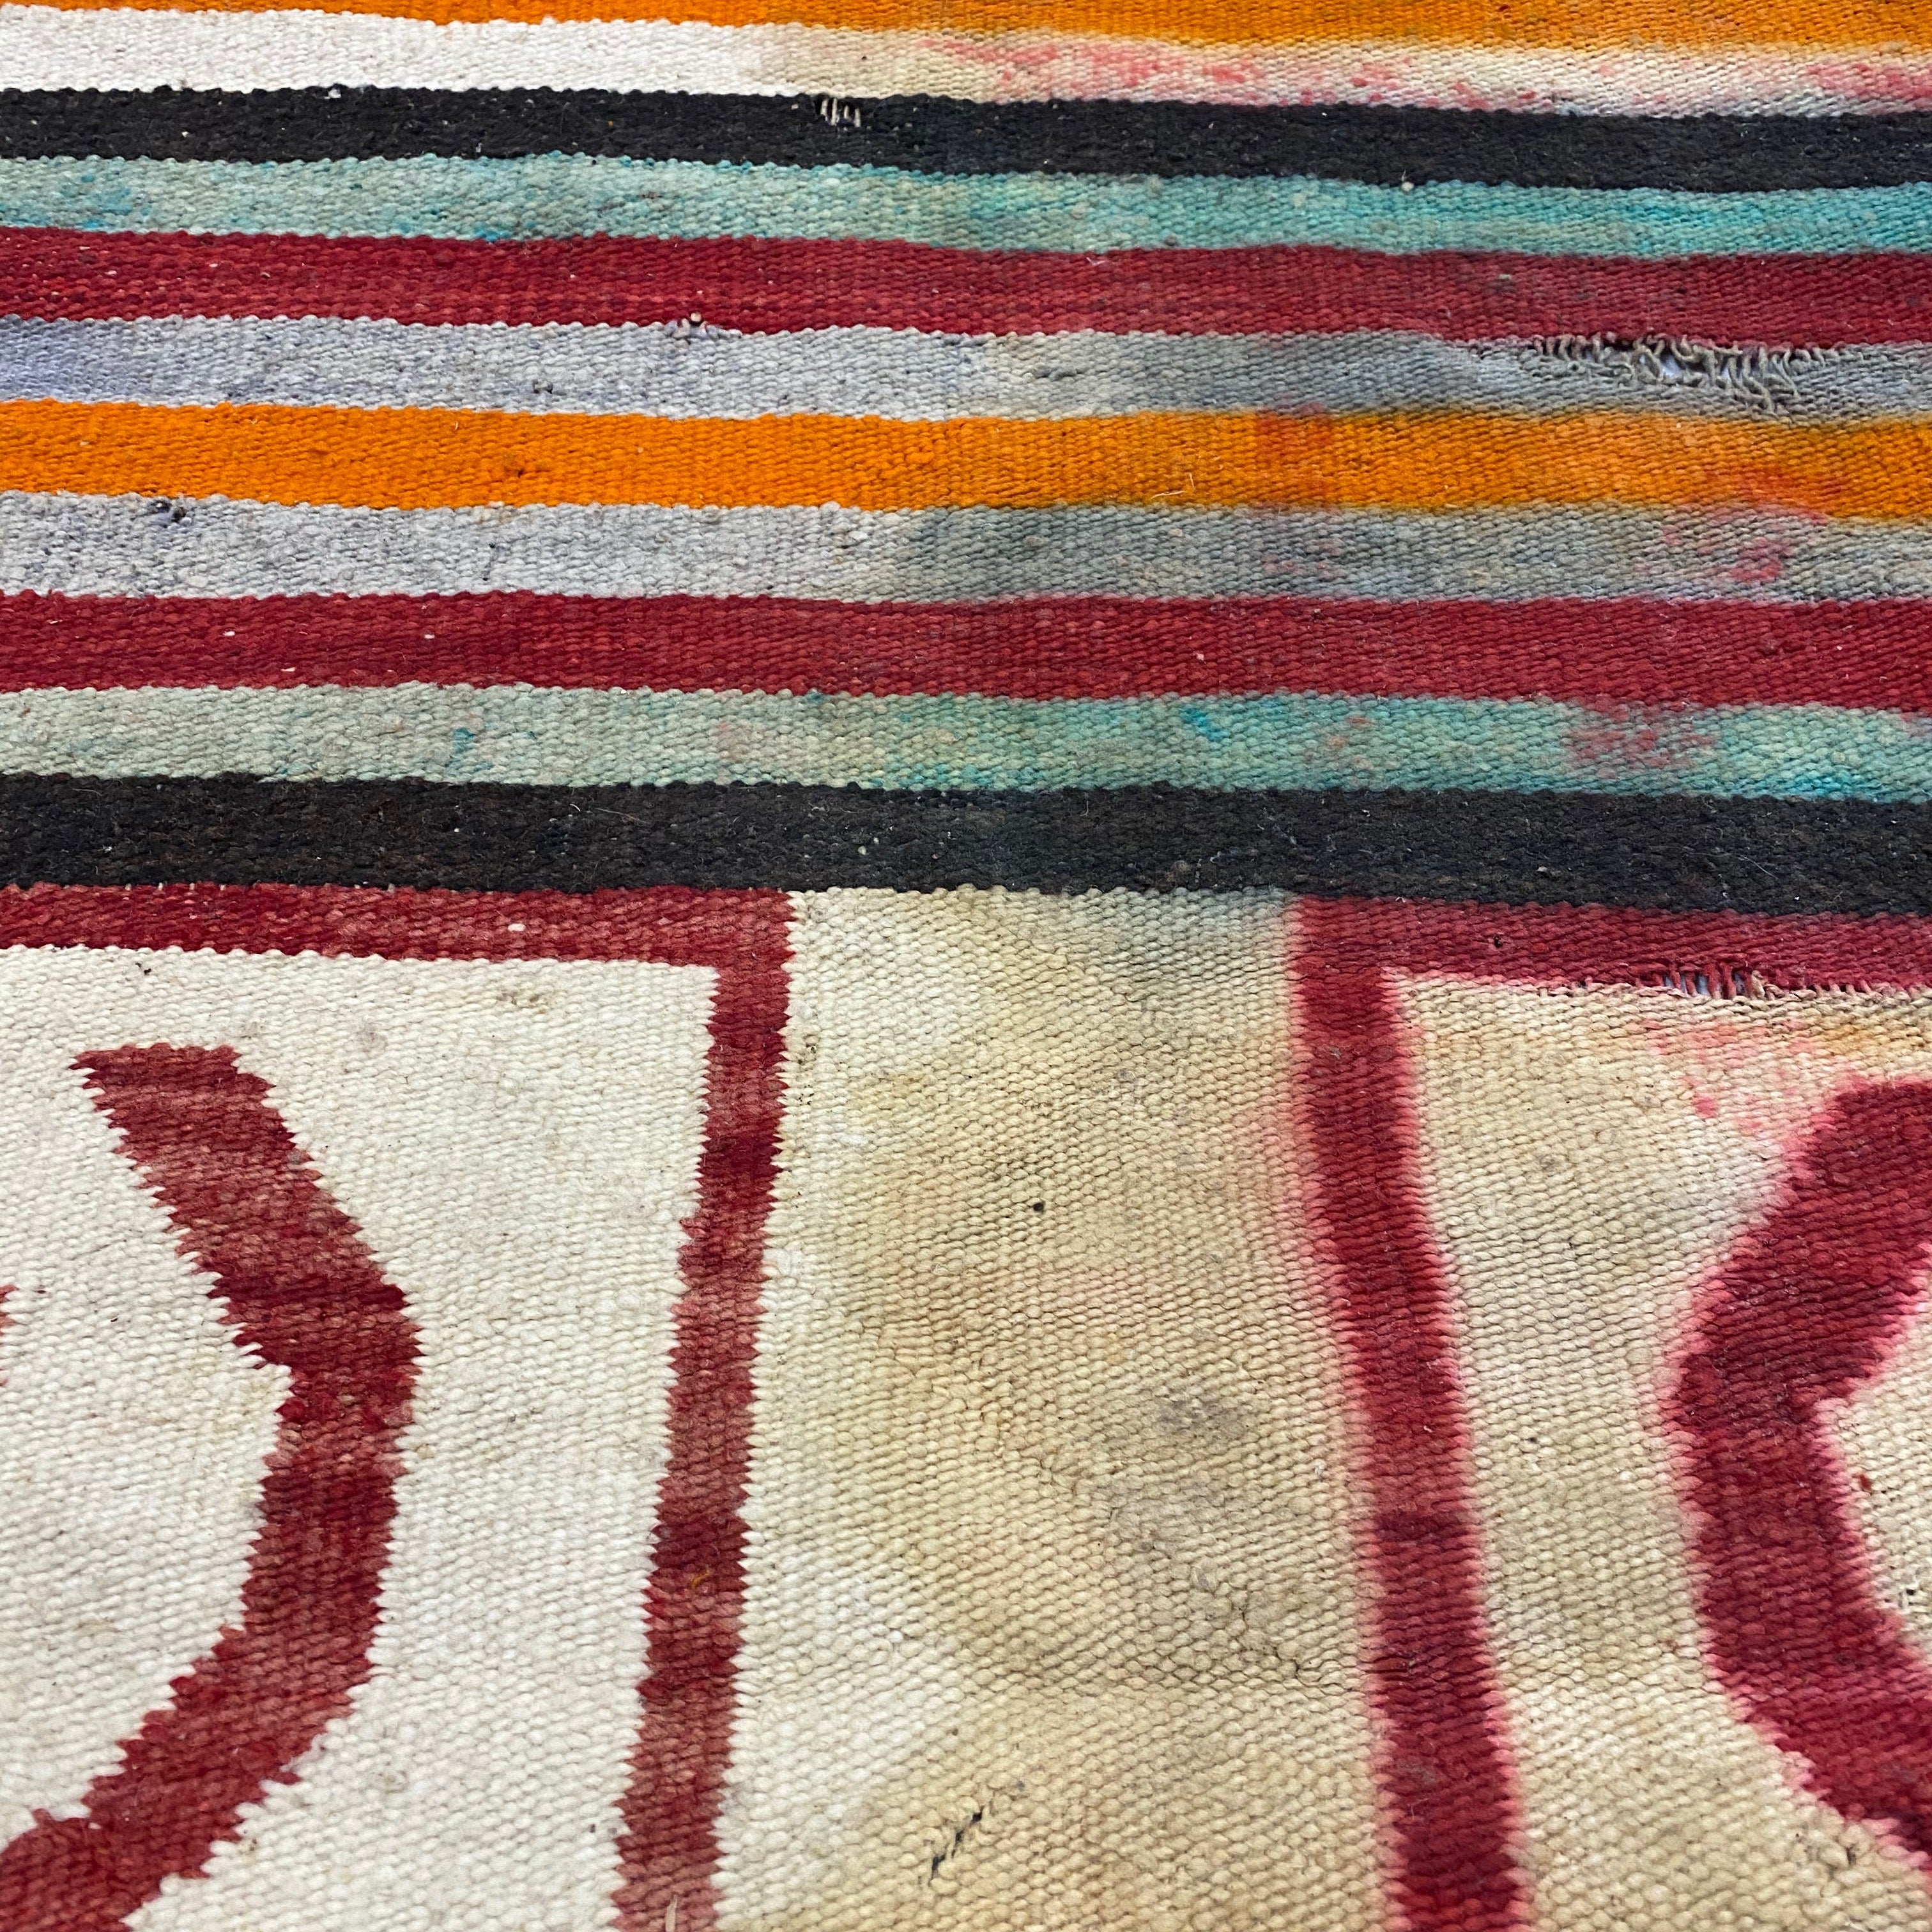 1920s Navajo Rug with Ranch Markings | AS IS